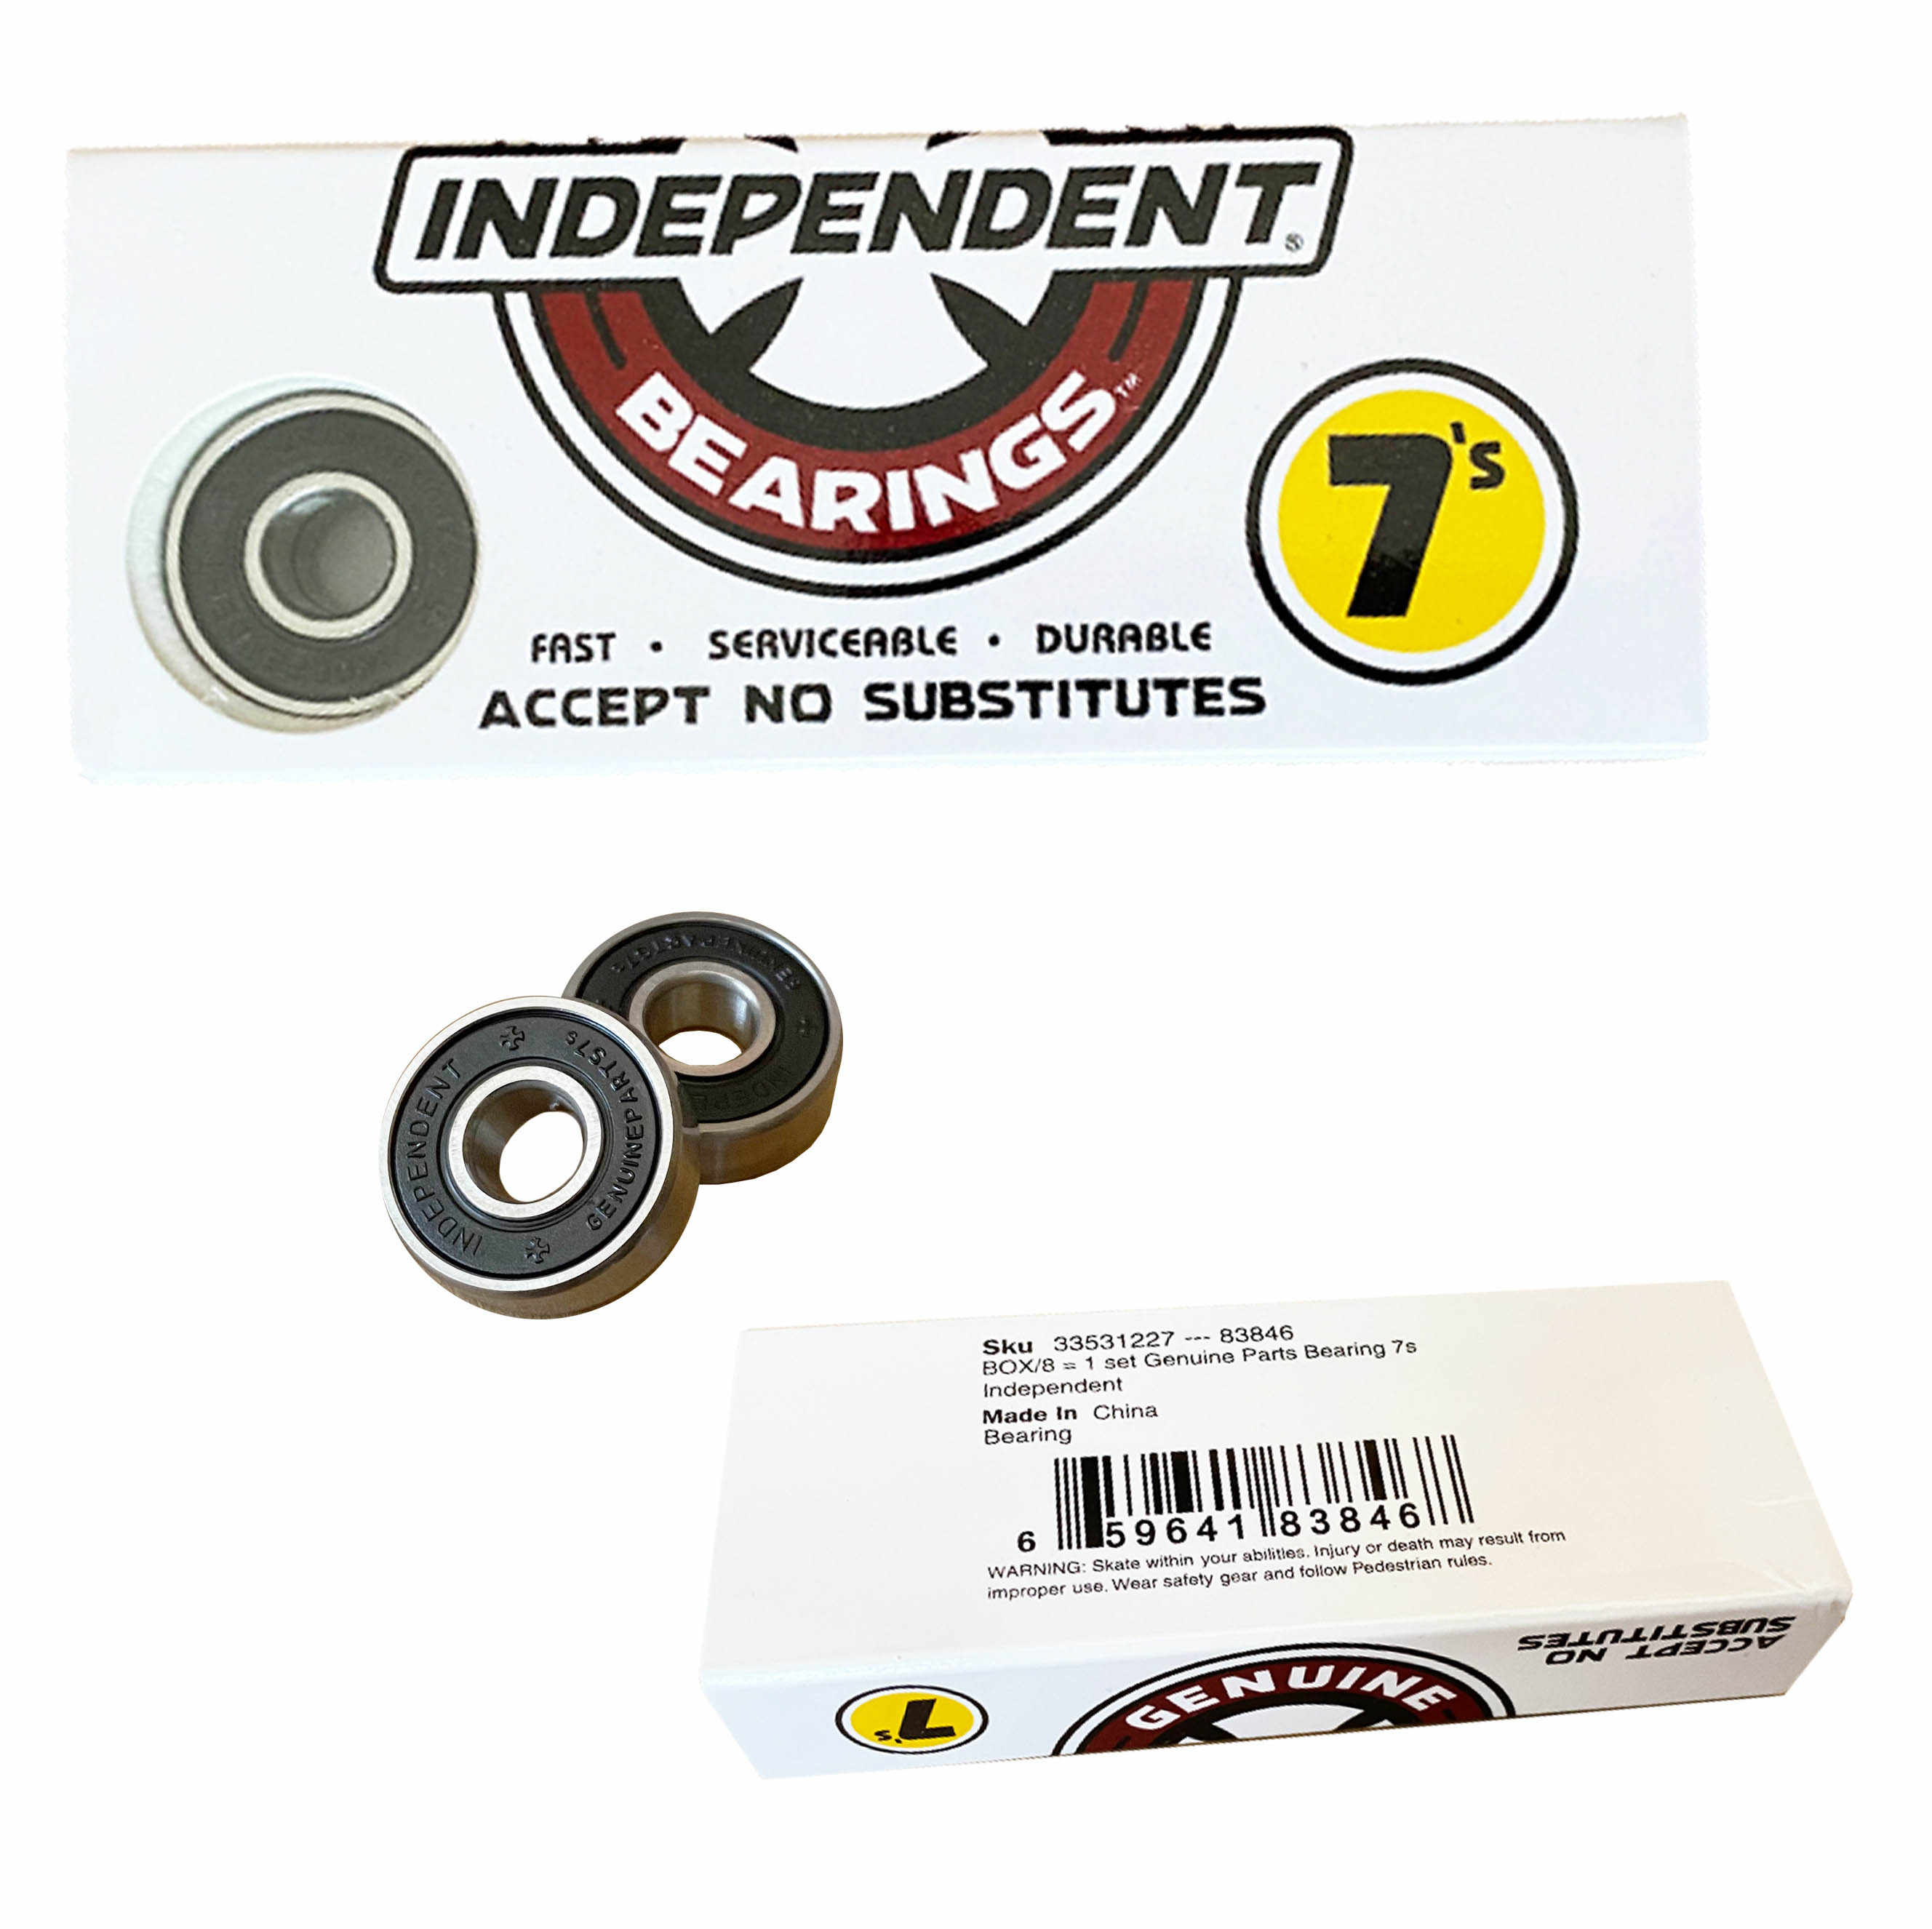 Genuine Skateboard Parts Bearings Professional Double Roller Skate longboard bearings